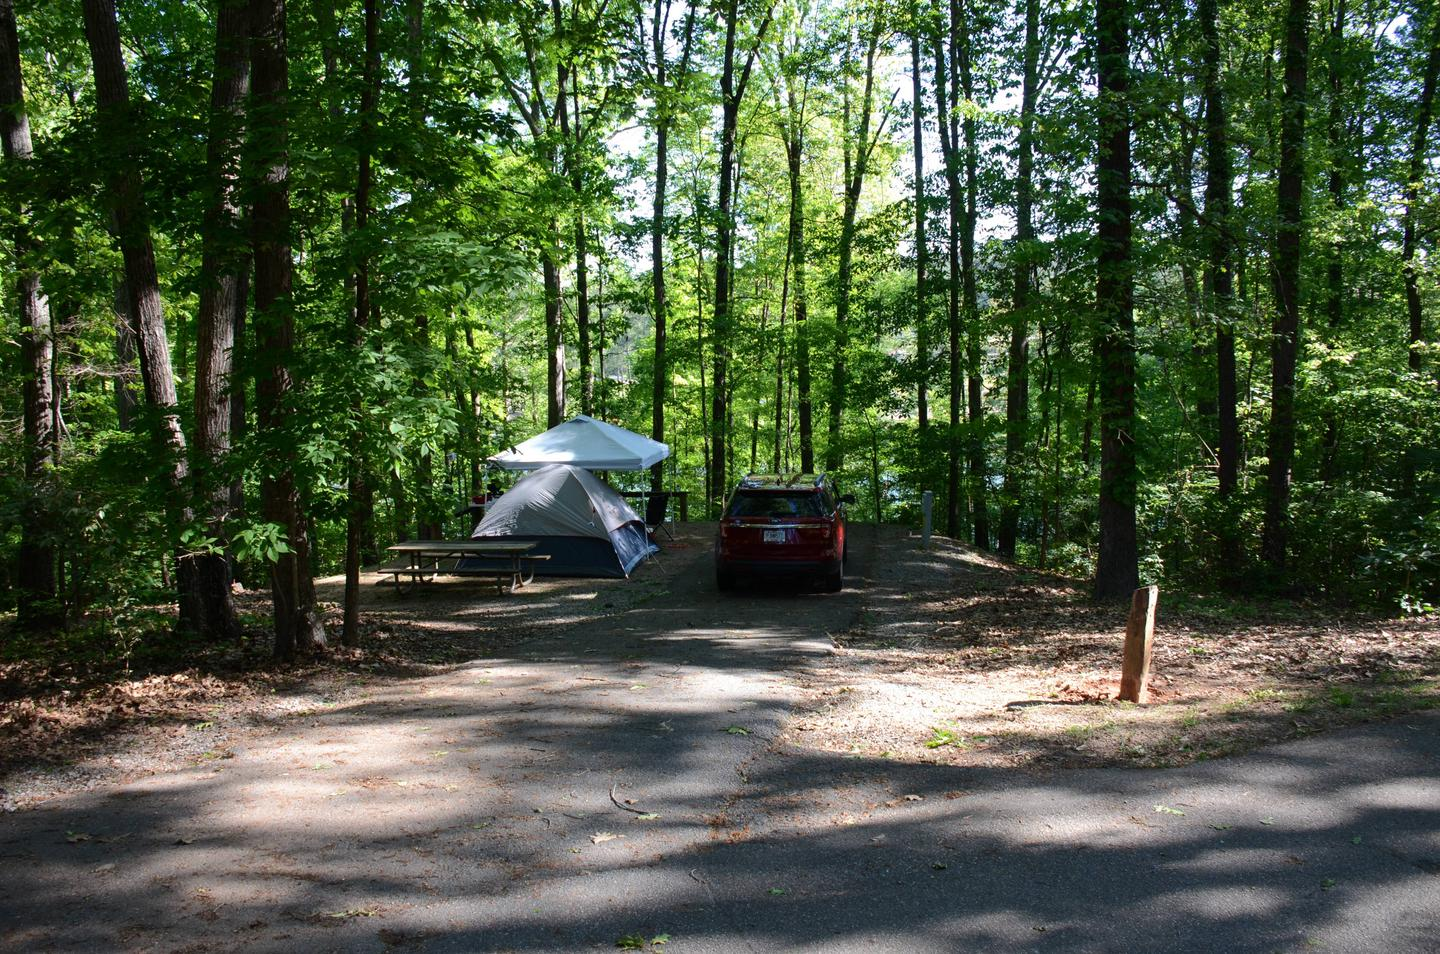 Driveway slope, awning-side clearance.McKinney Campground, campsite 10.